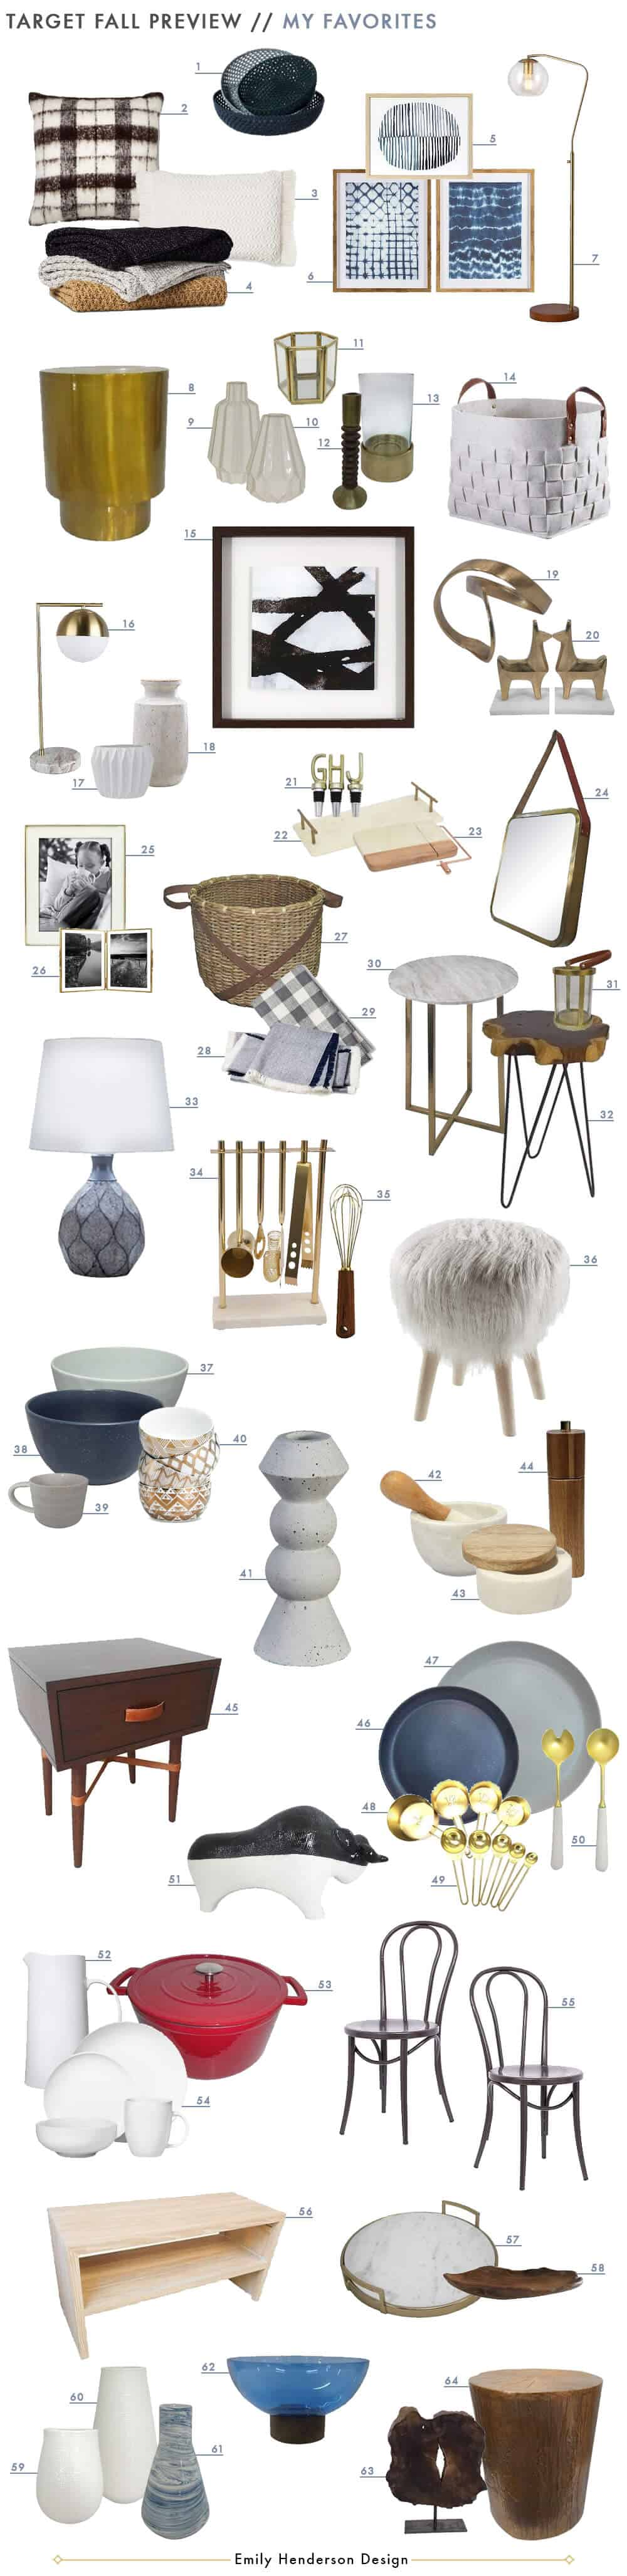 The new target fall style collection emily henderson Target fall home decor